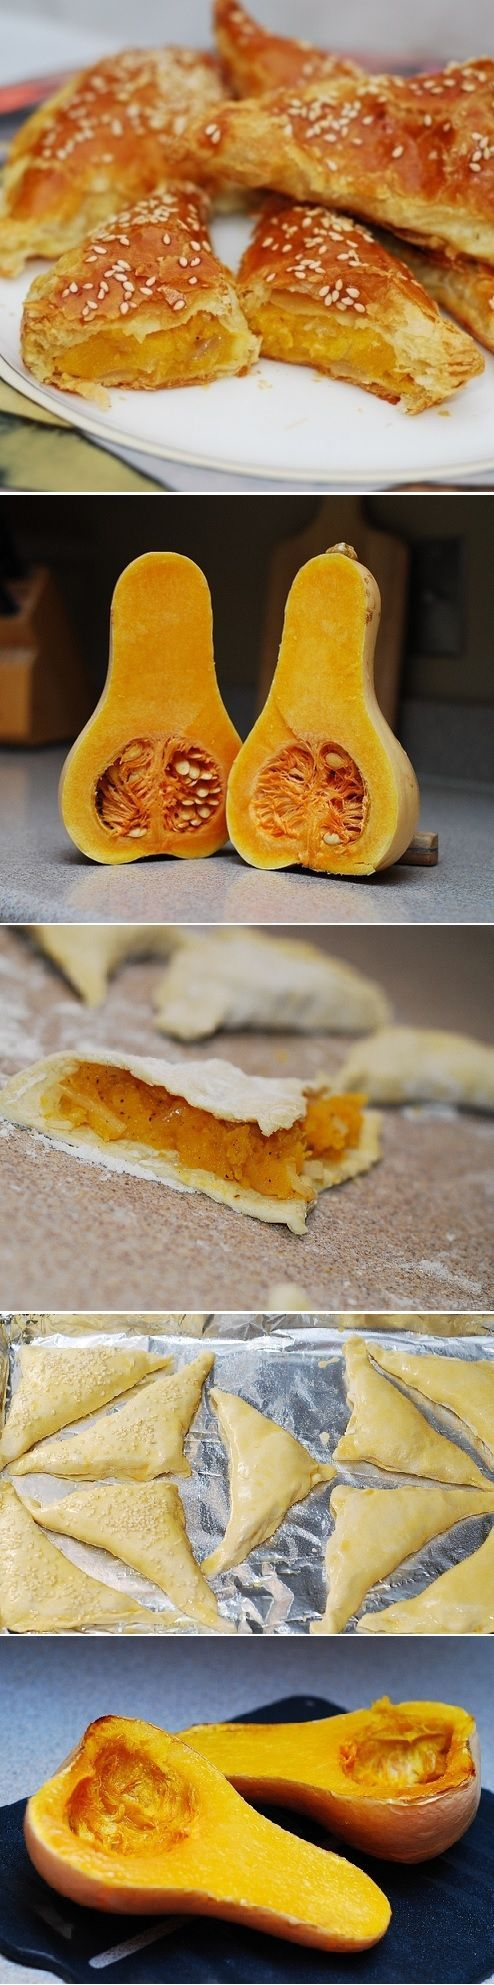 Butternut squash, Squashes and Puff pastries on Pinterest